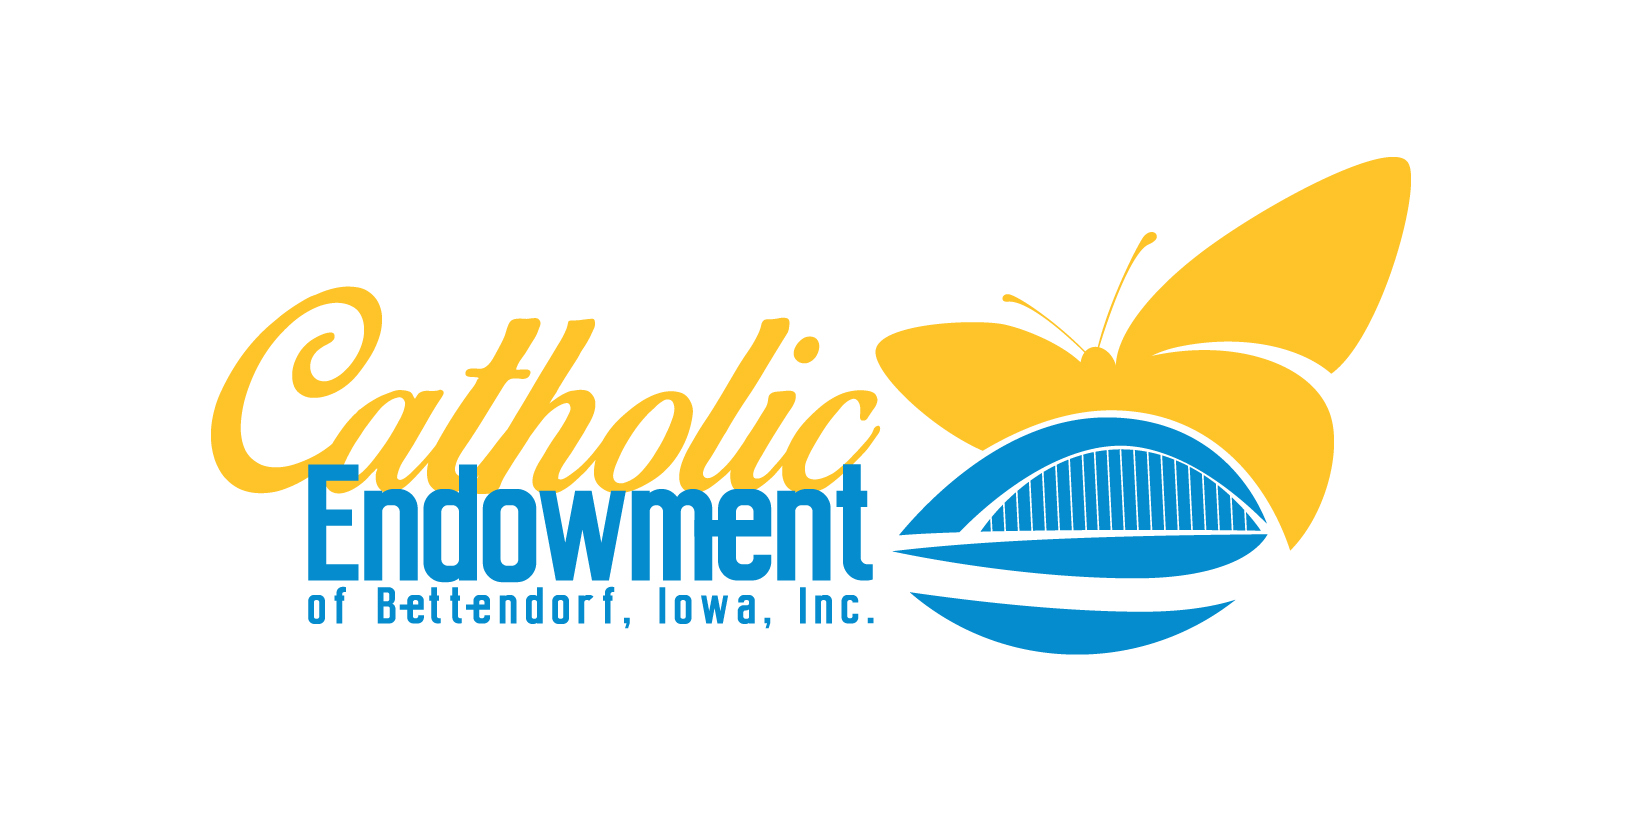 Catholic Endowment of Bettendorf Iowa